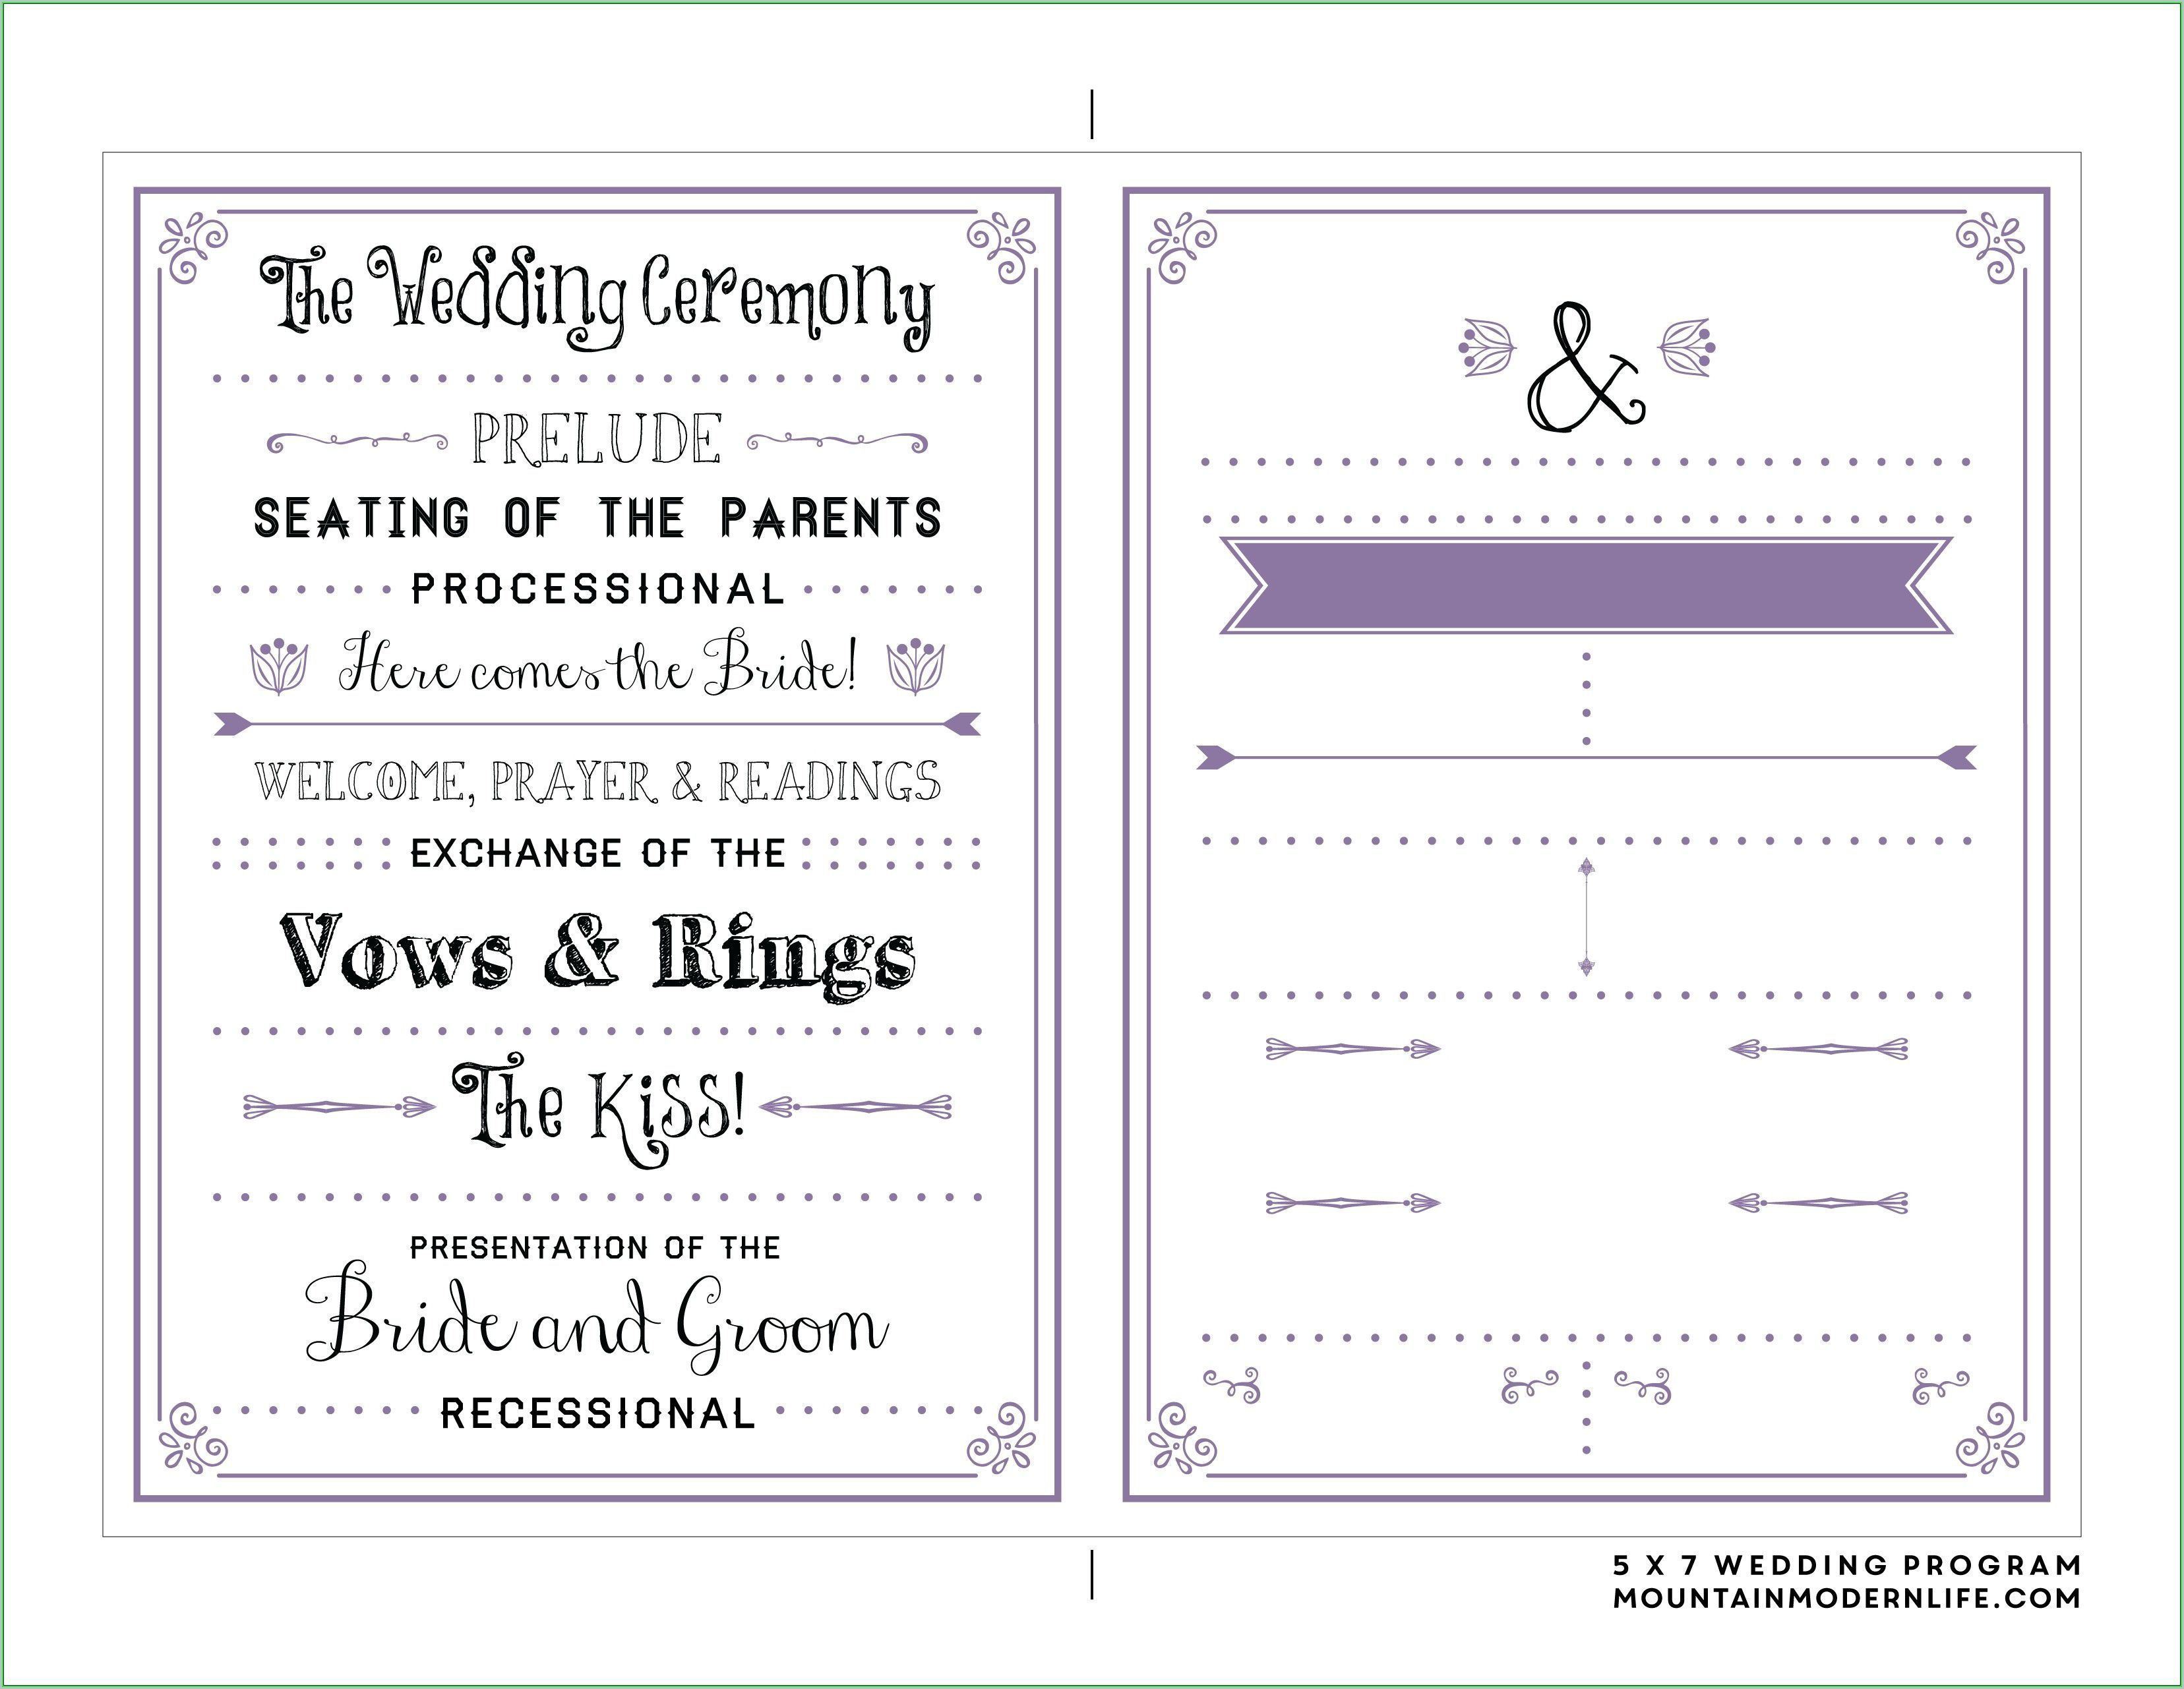 001 Fearsome Wedding Program Fan Template Image  Free Word Paddle Downloadable That Can Be PrintedFull